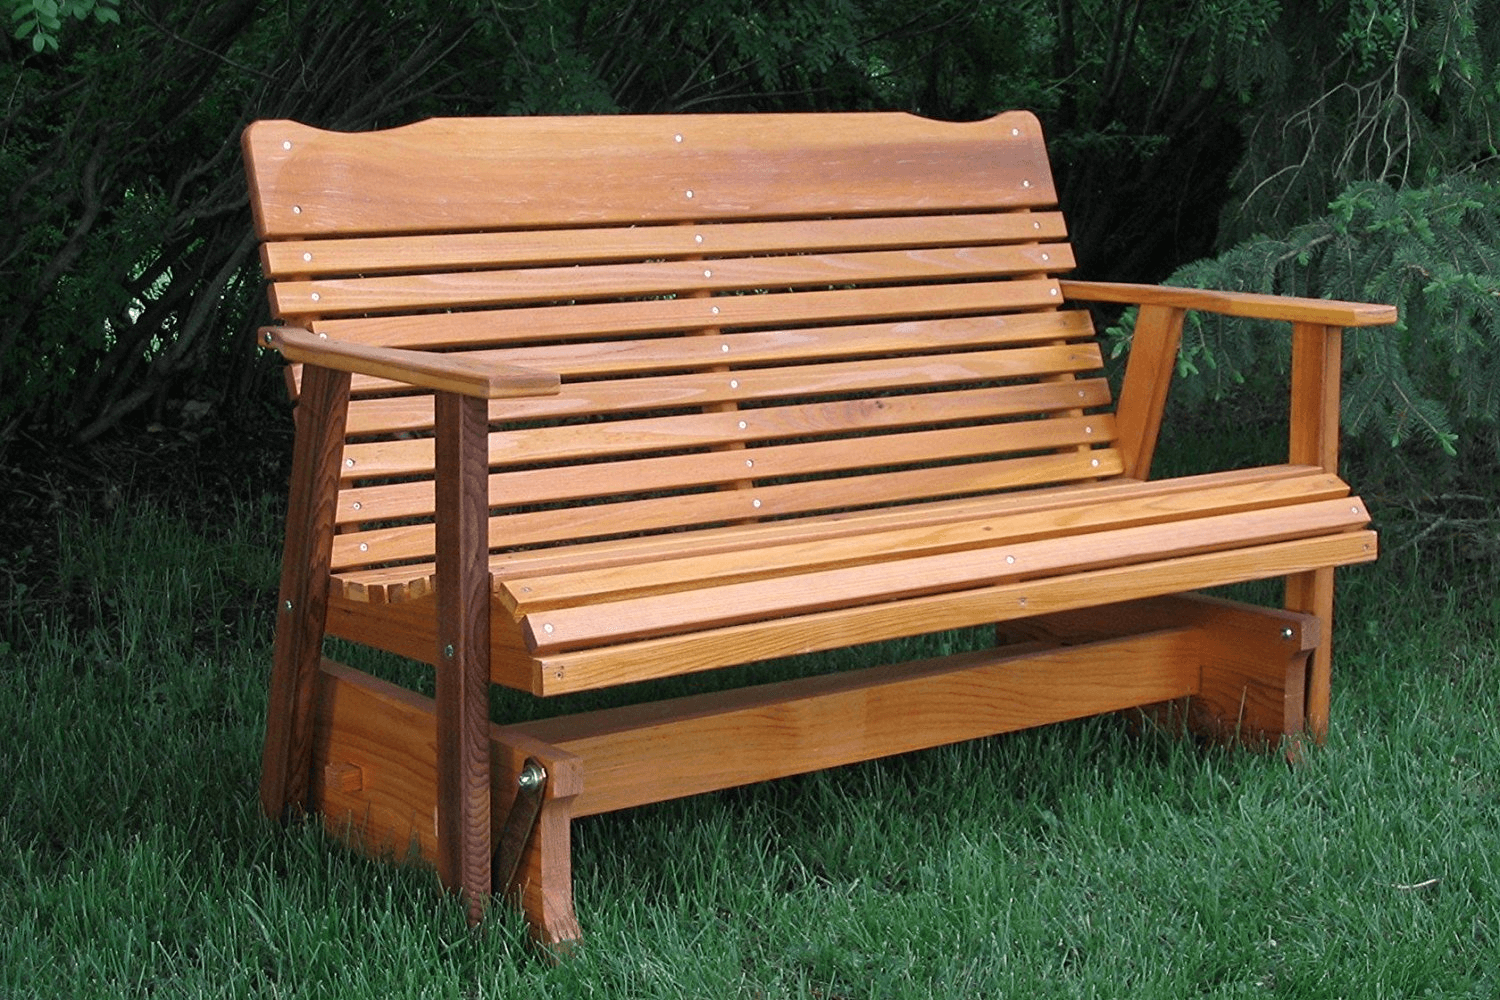 Wooden porch glider swings suitable for outdoor or garden